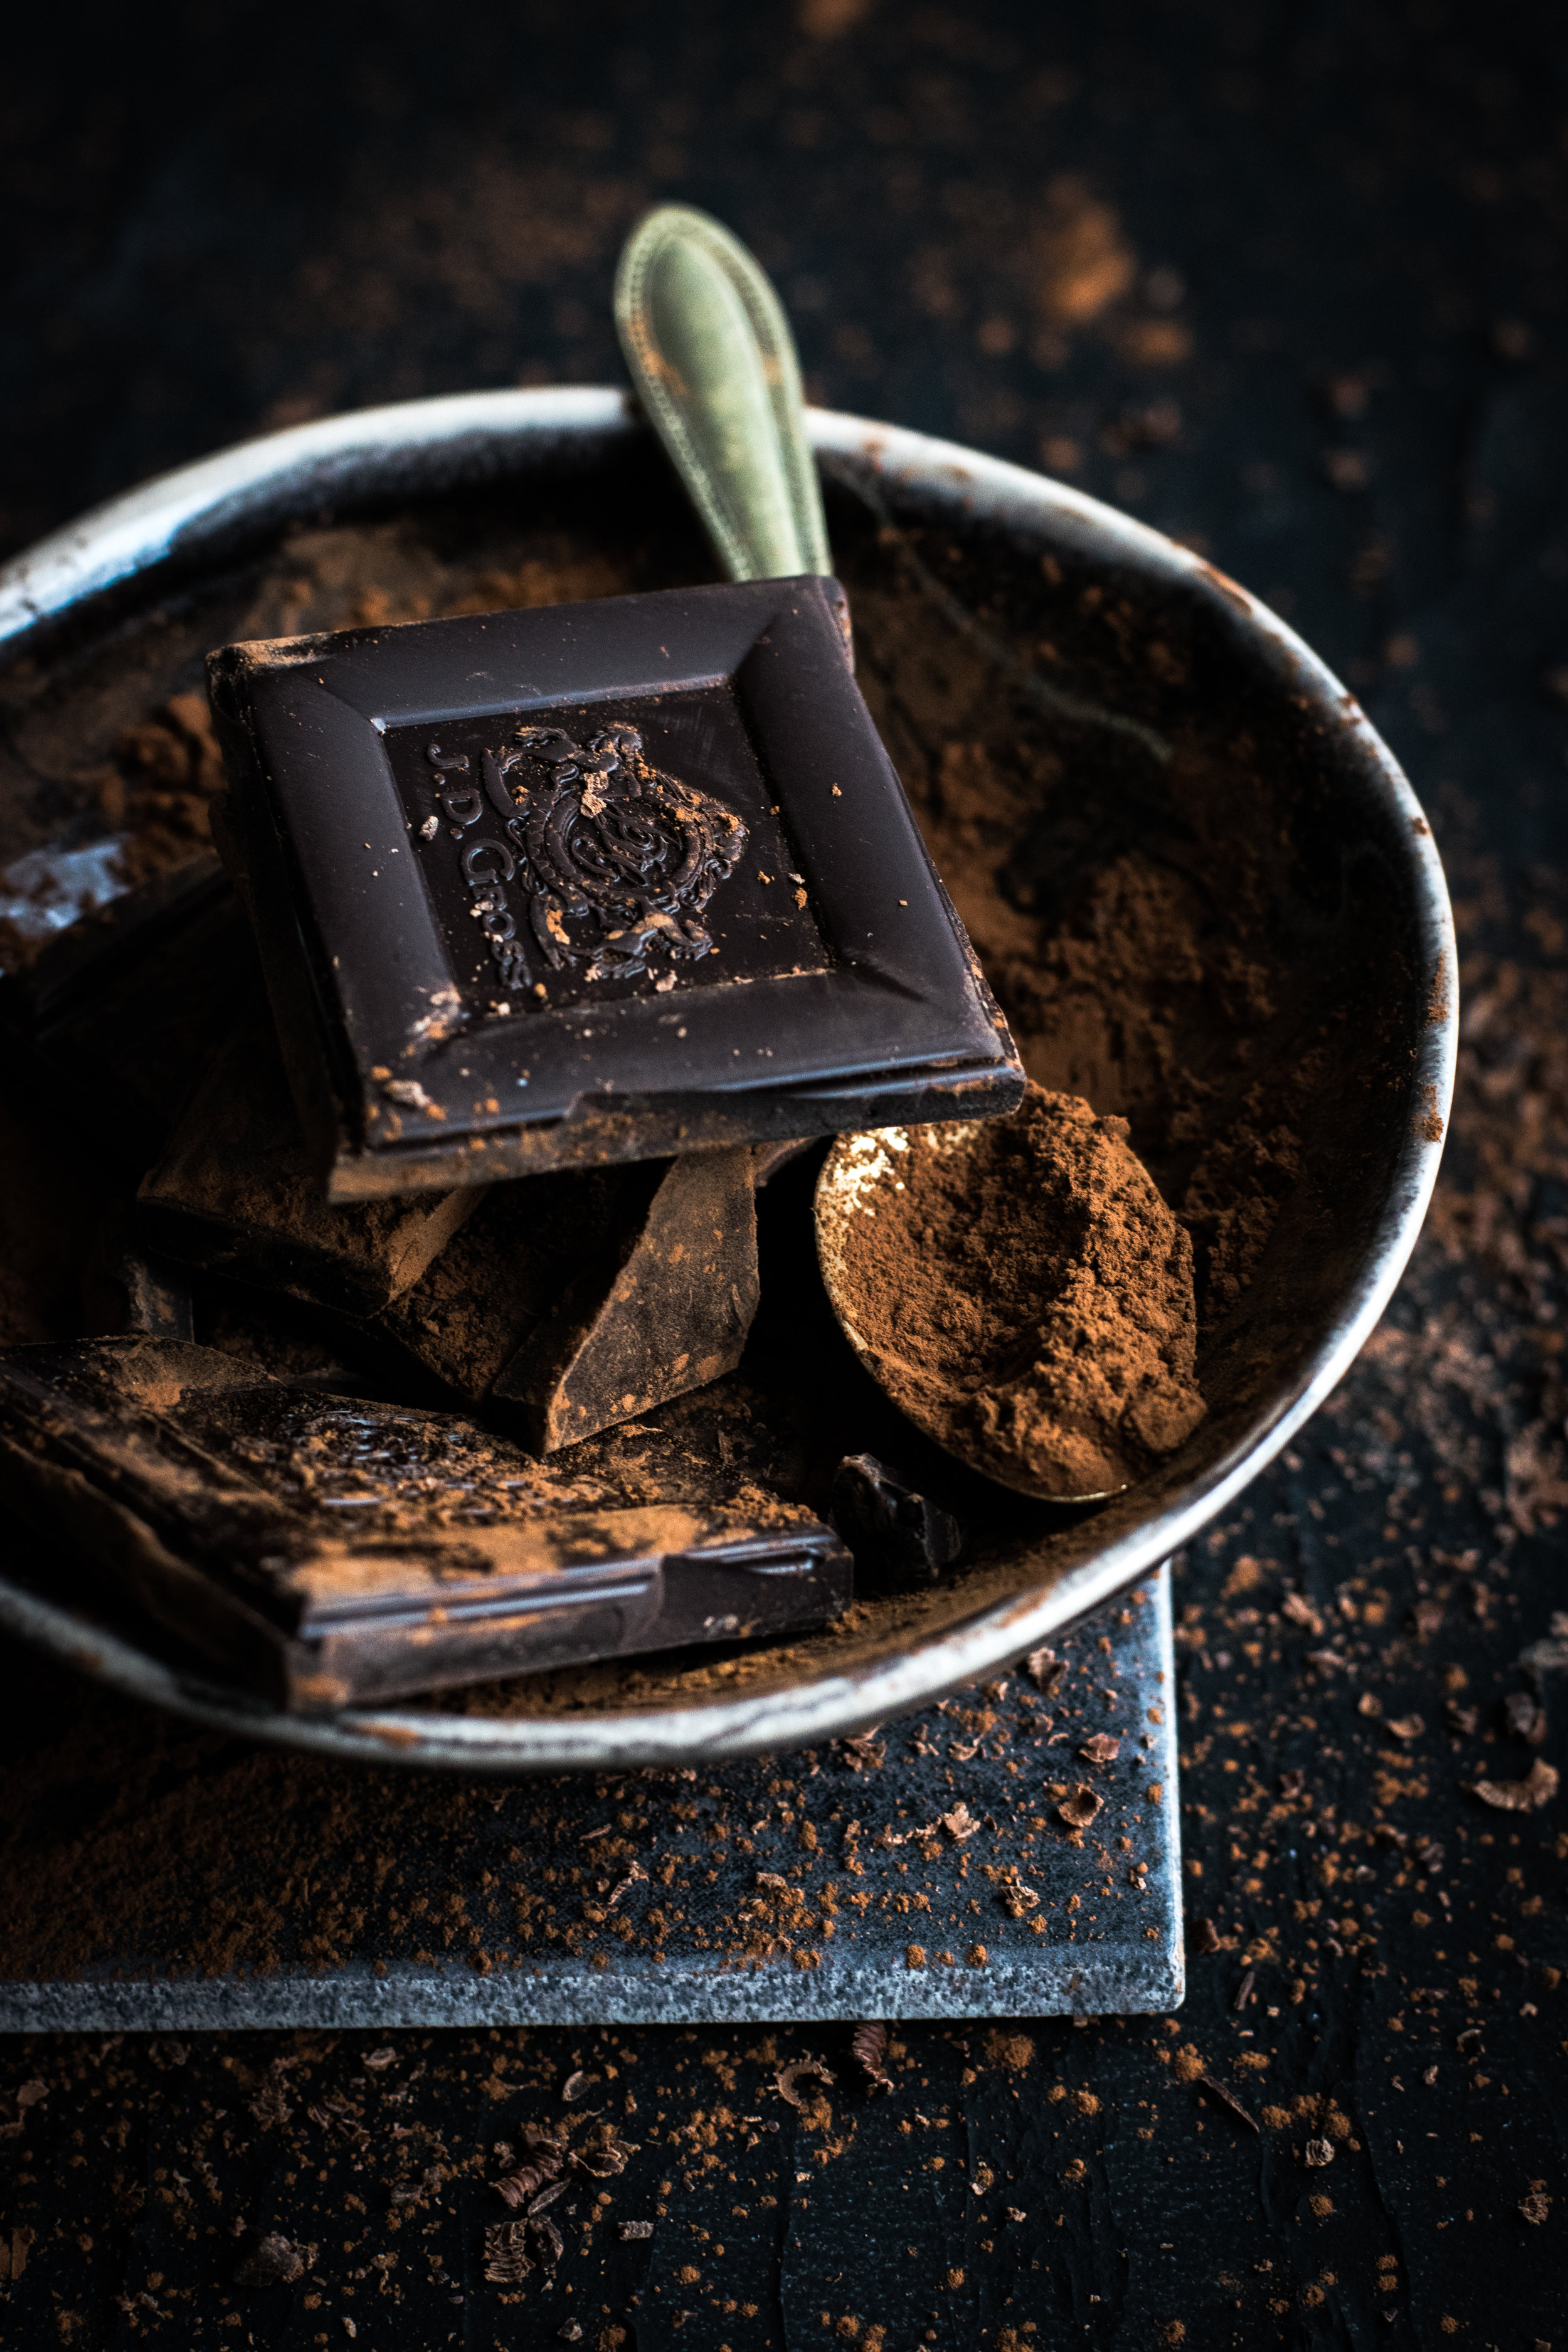 program - DAY 1Bean 2 Bar AtelierHistory of Belgian ChocolateDAY 2Chocolate makingHow to source the beansDinner in the city of BrusselsDAY 3Taste and chocolateUnderstanding future trendsSustainability in chocolateWorkshop: the 5 senses of chocolate